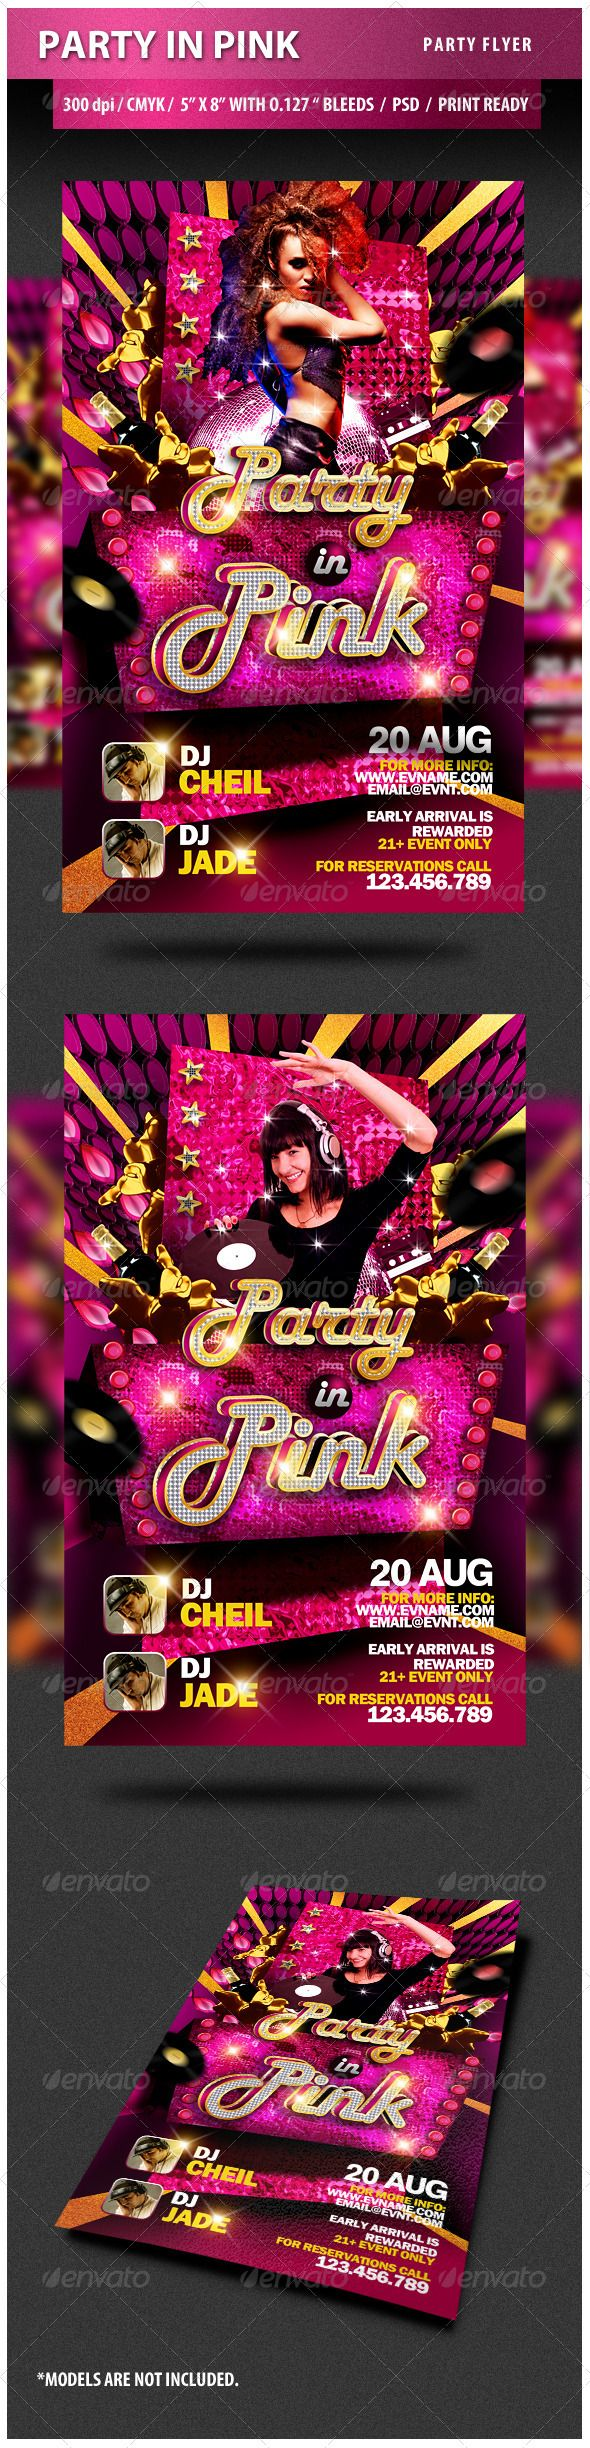 Party in Pink Party Flyer — Photoshop PSD #dance #creative • Available here → https://graphicriver.net/item/party-in-pink-party-flyer/2904808?ref=pxcr